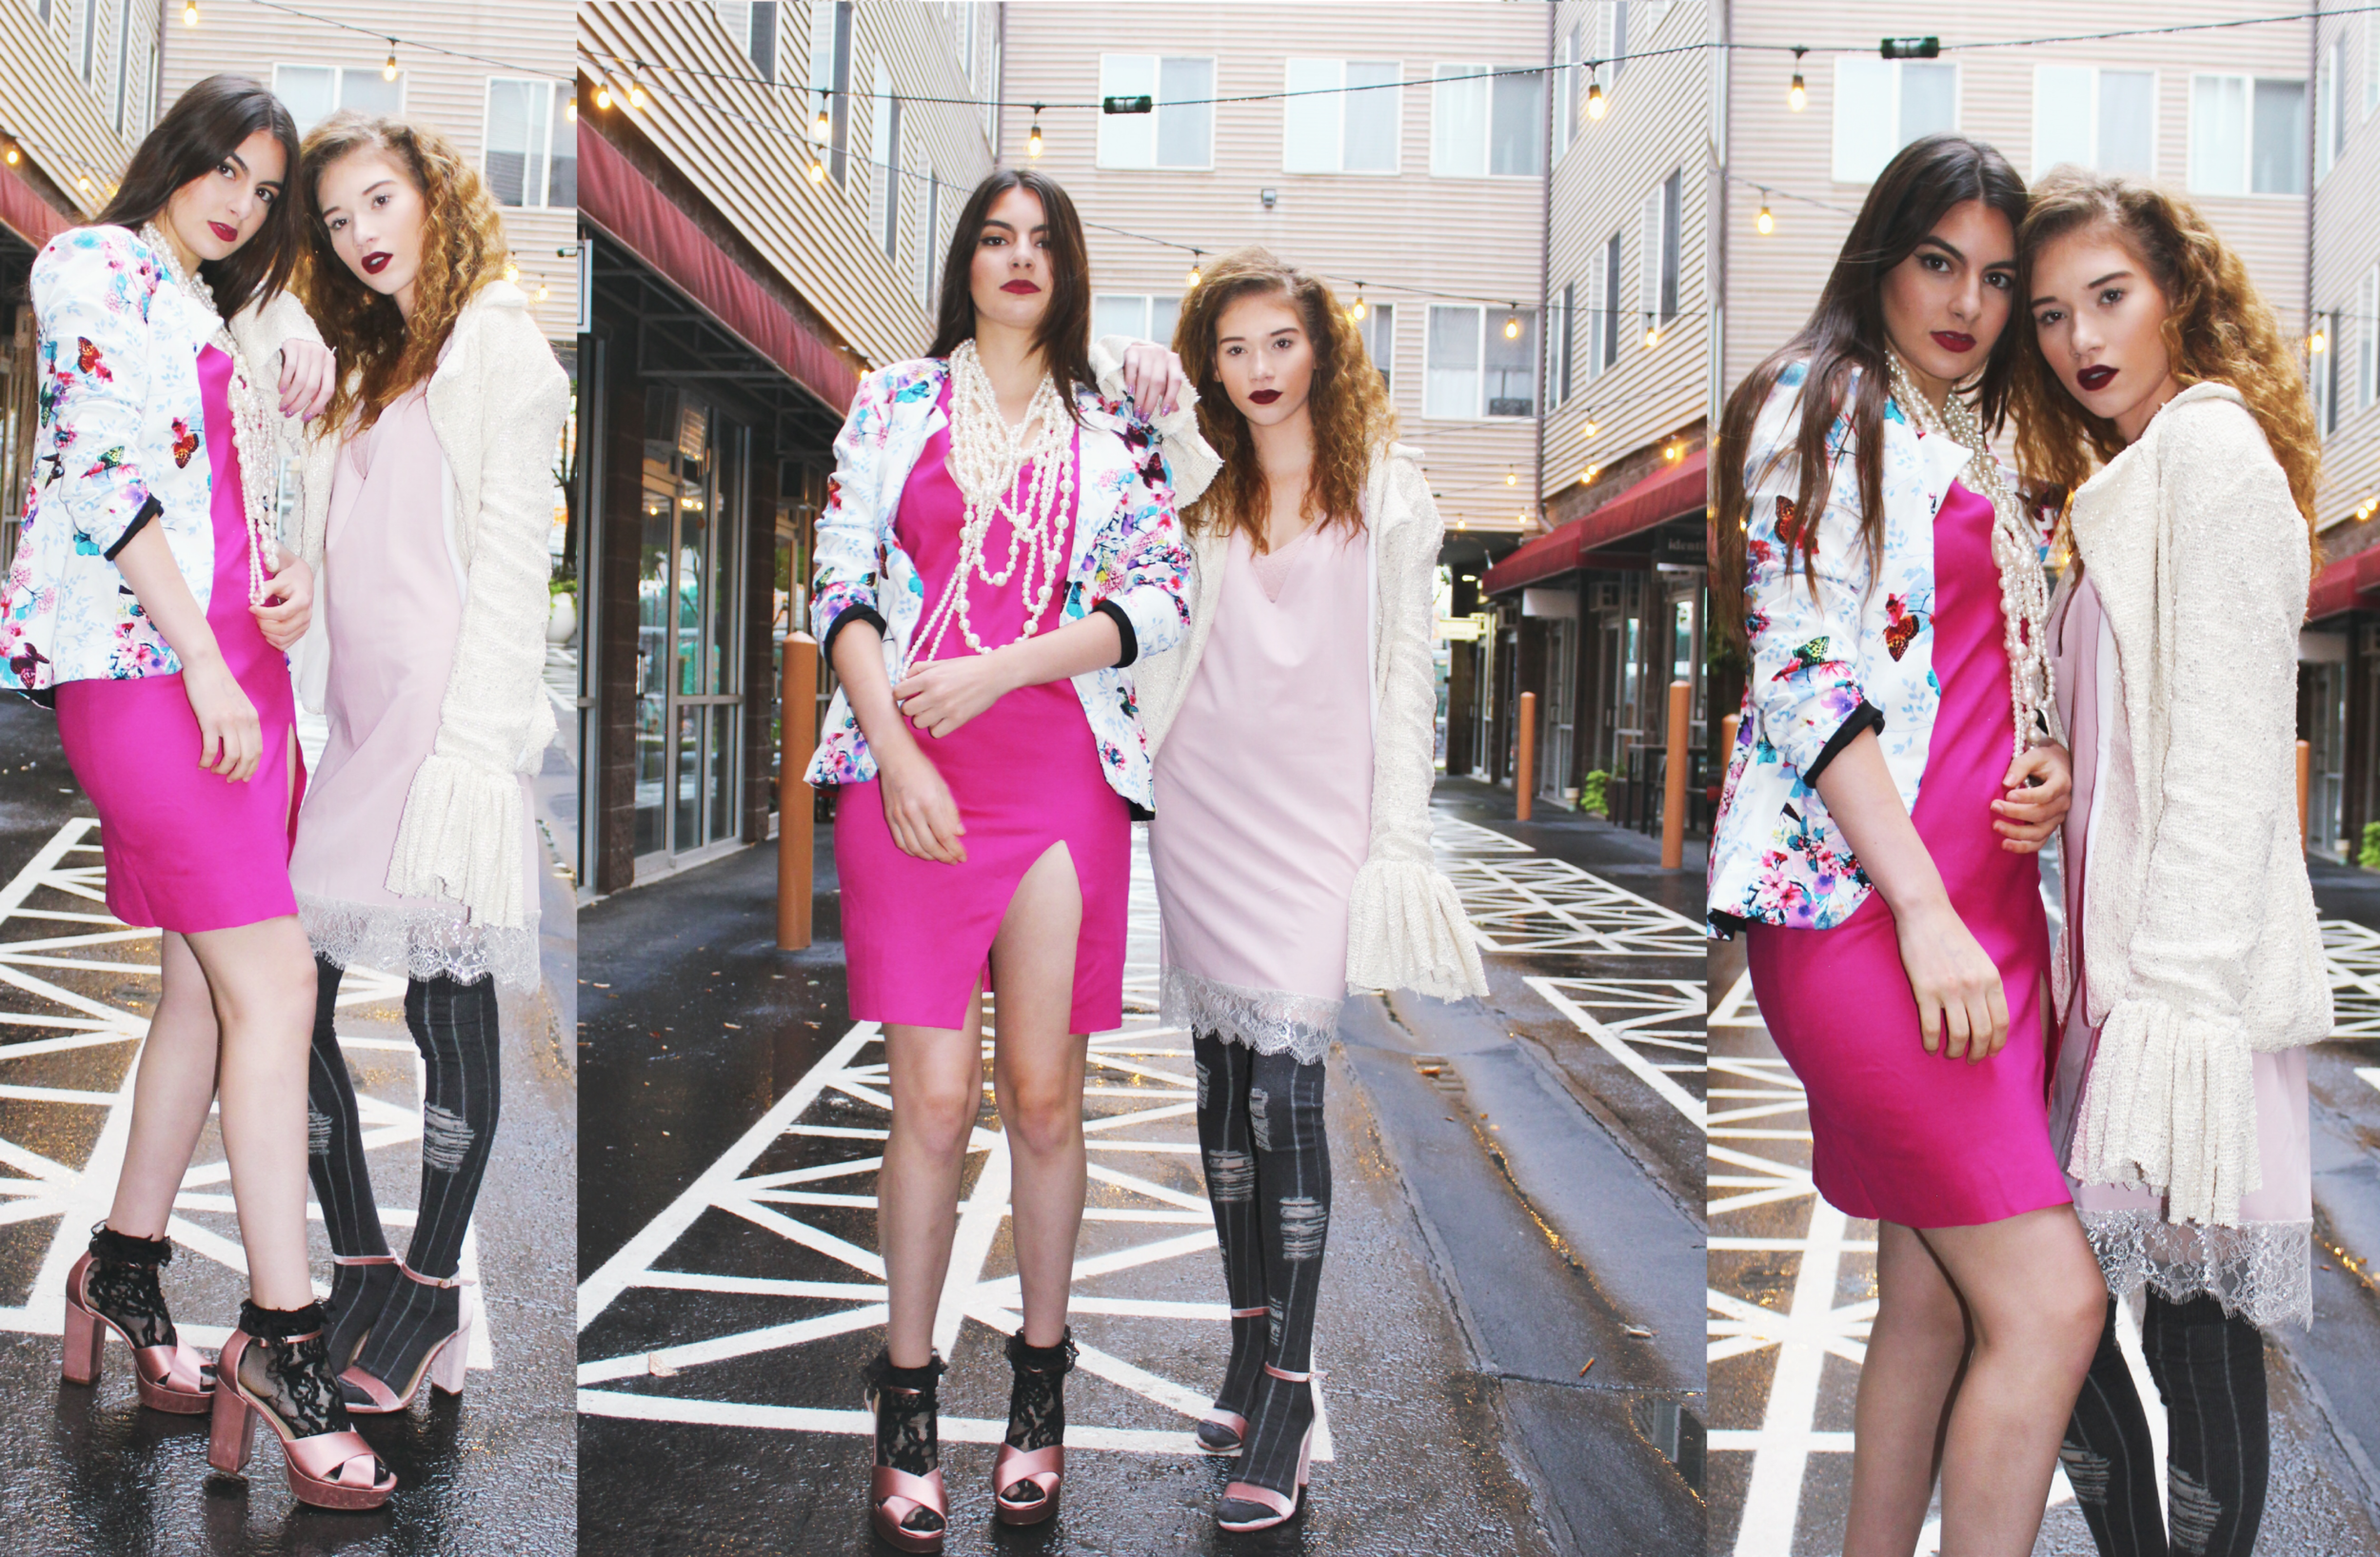 Shop The P.Y.T Editorial Collection - Sexy...Edgy...Flirty...Chic